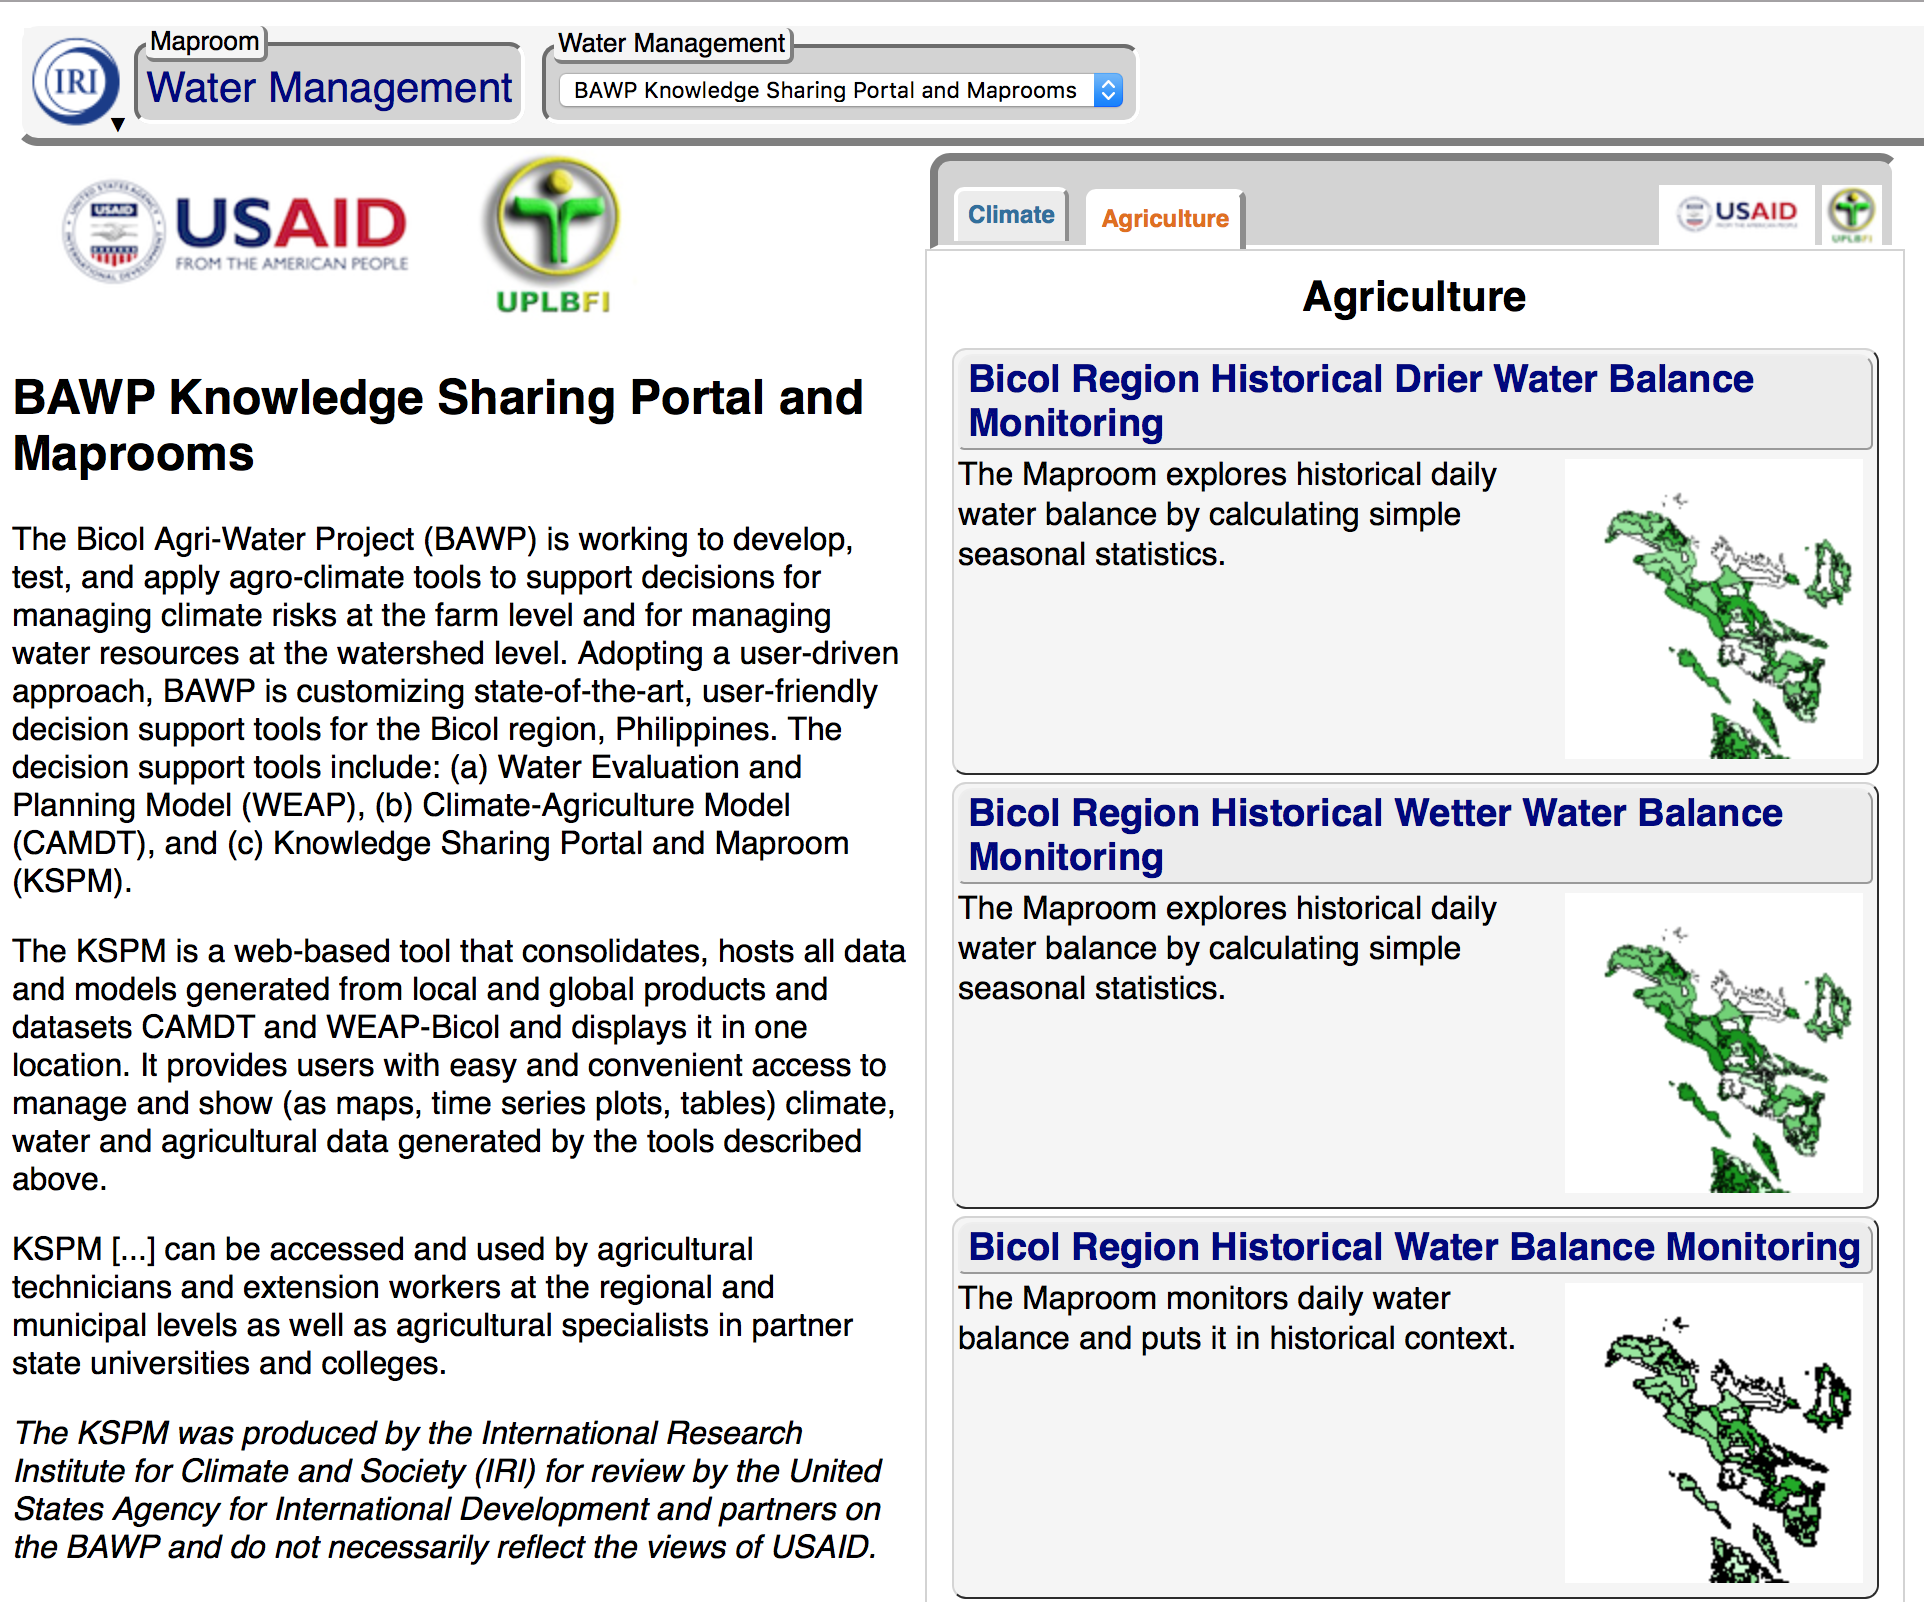 The Bicol Agri-Water Project is working to develop, test, and apply agro-climate tools to support decisions for managing climate risks at the farm level and for managing water resources at the watershed level. This is a screenshot of the custom map room IRI developed with partners for the project.